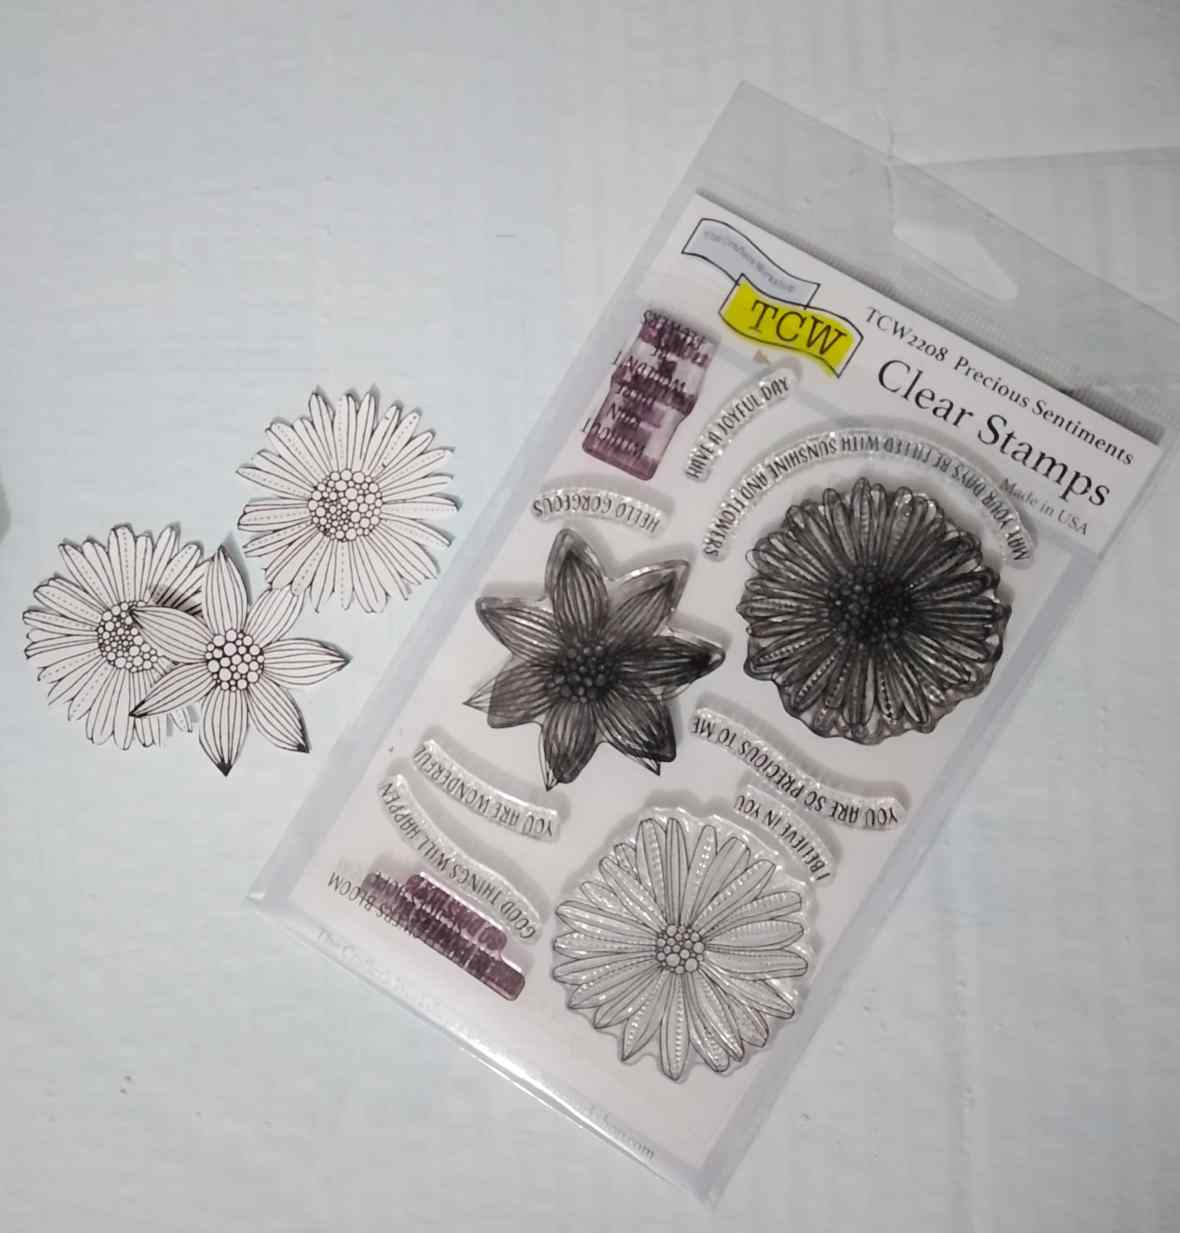 Art stamps, clear stamps, the Crafter's Workshop, mixed media project